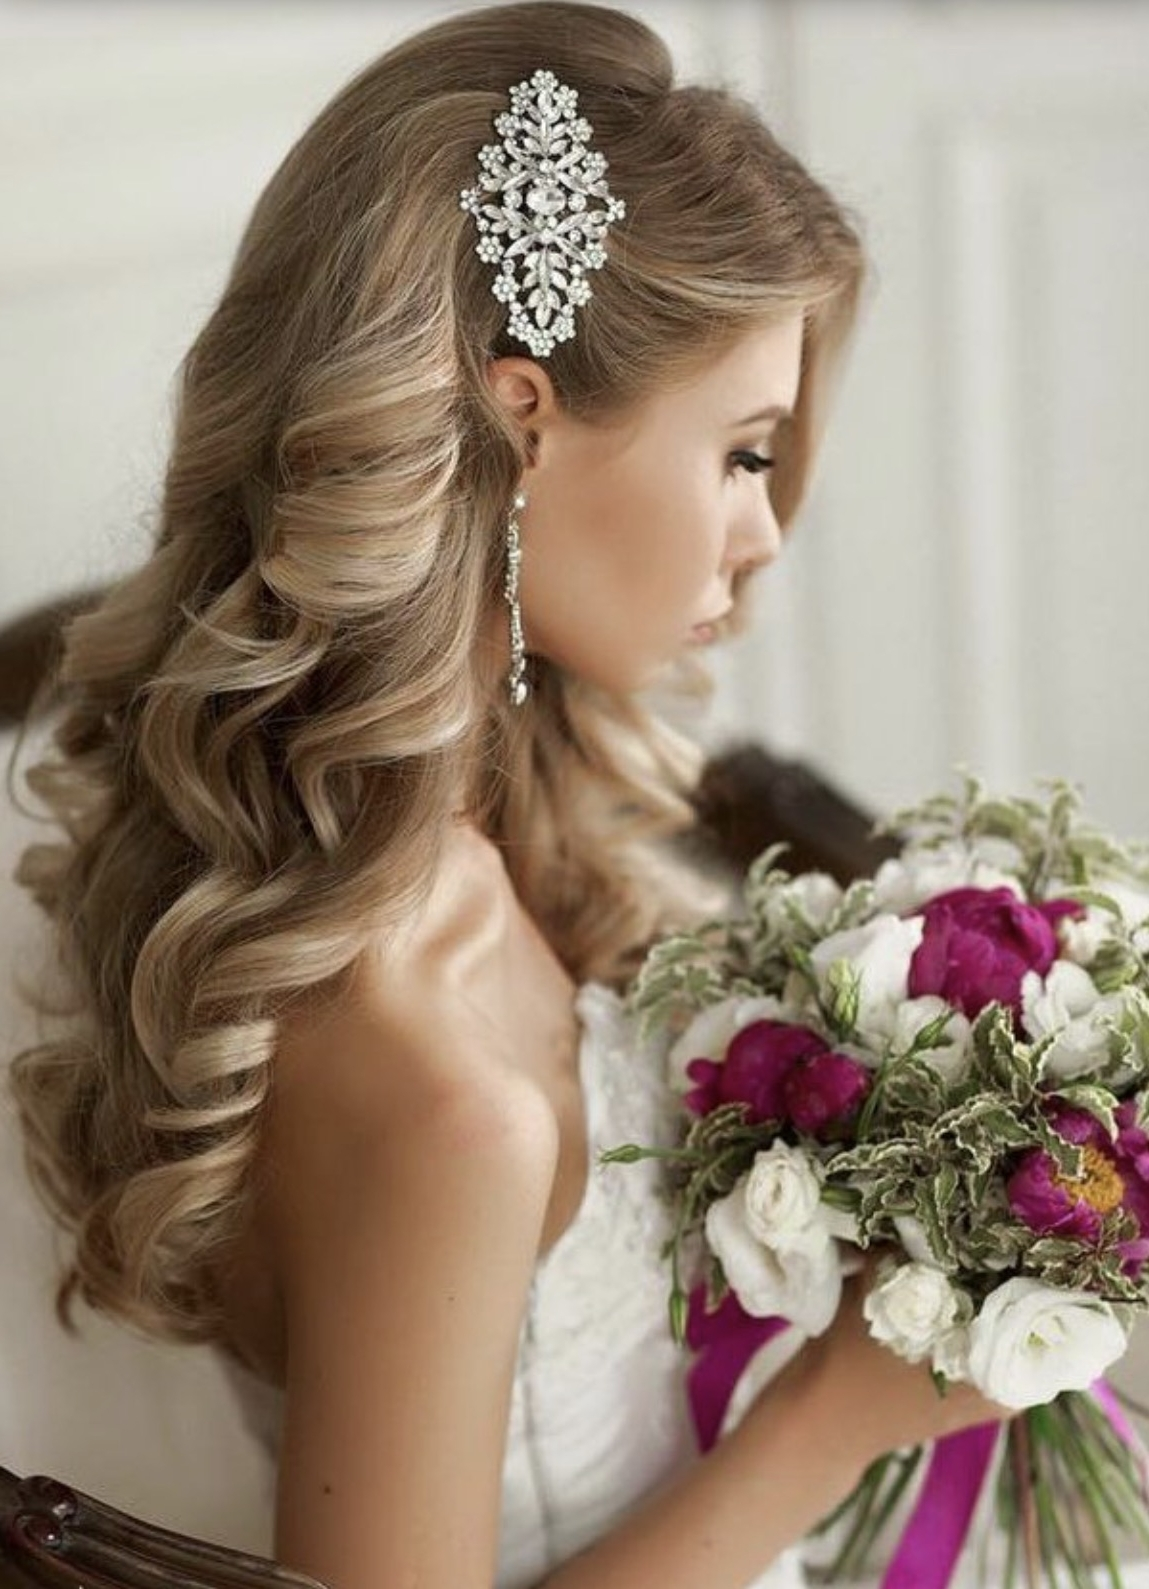 Recent Wedding Hairstyles For Older Brides For Weddings (View 7 of 15)